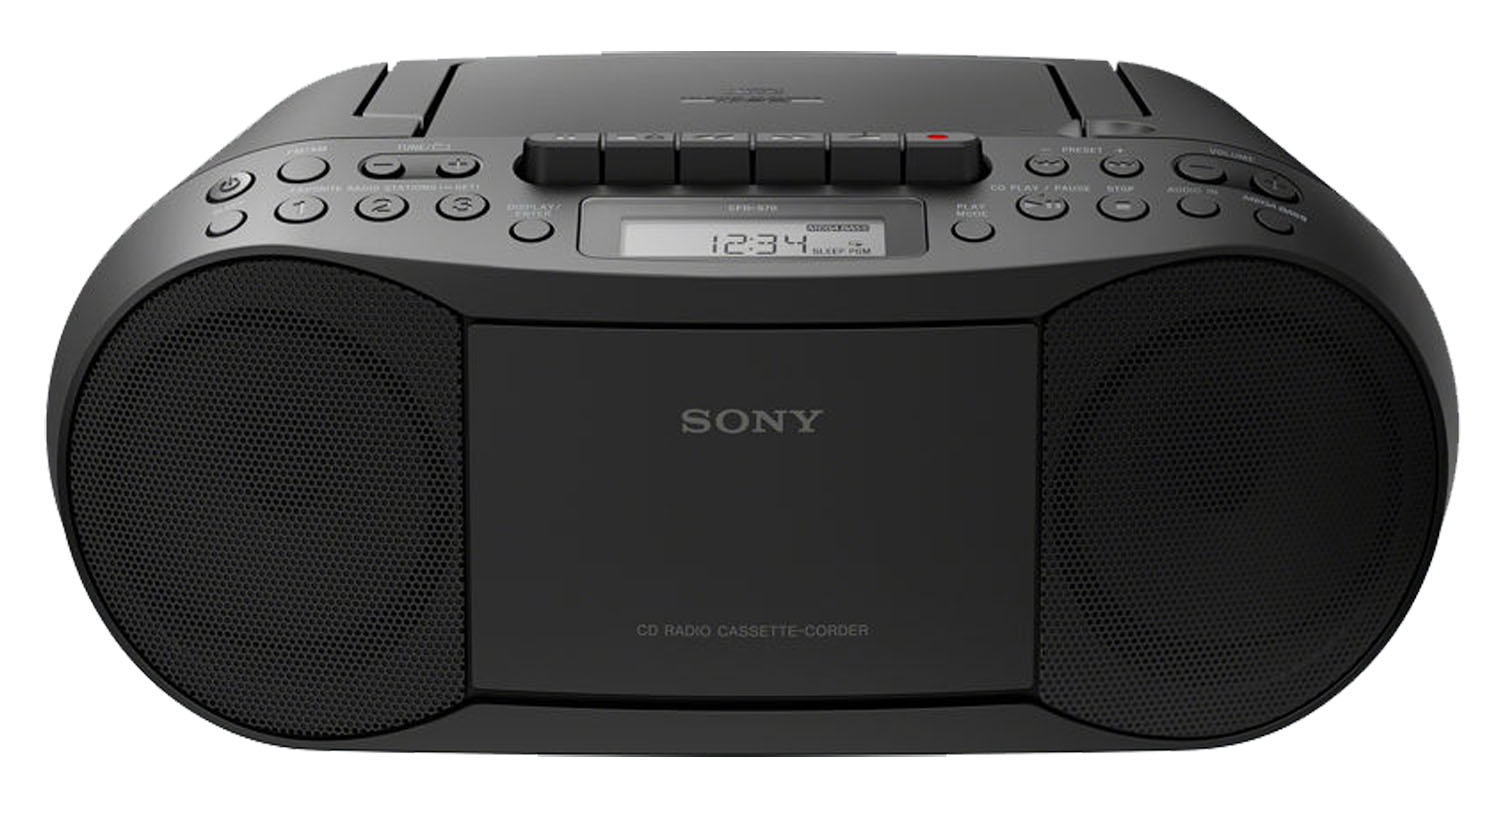 sony black cd radio cassette recorder boombox cfds70blk. Black Bedroom Furniture Sets. Home Design Ideas